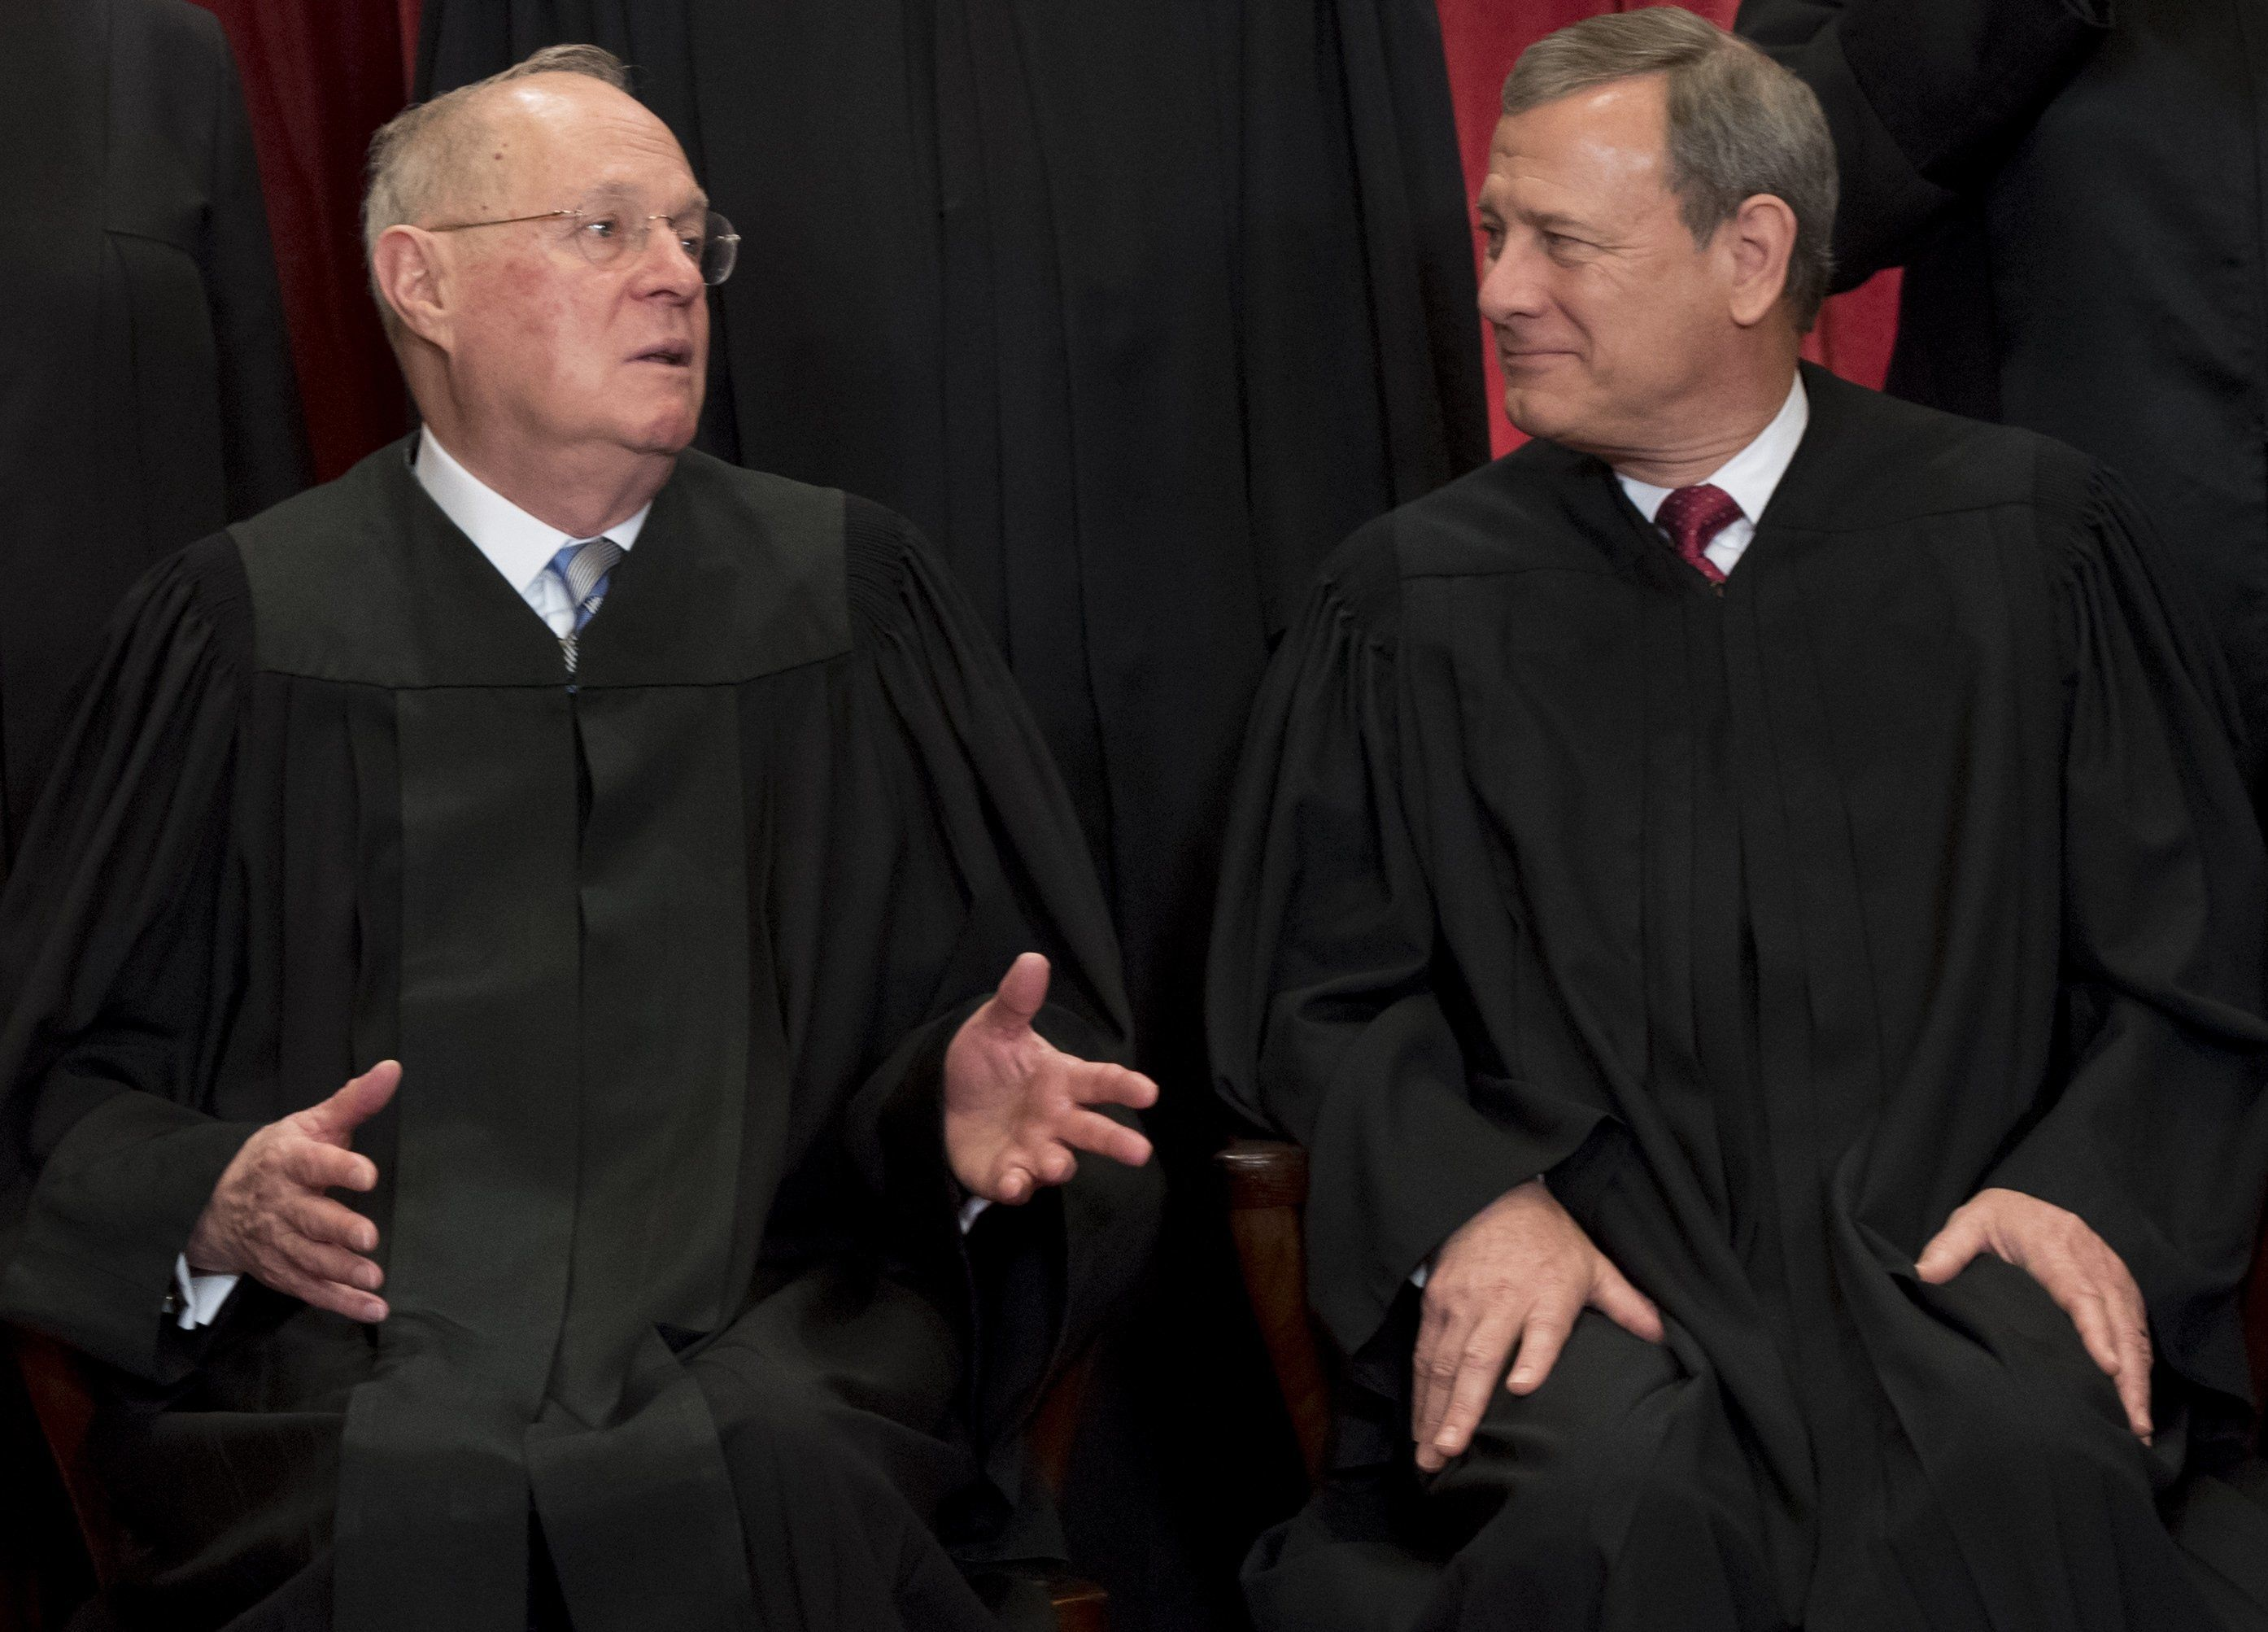 Chief Justice of the United States John G. Roberts (R) and US Supreme Court Associate Justice Anthony M. Kennedy (L) sit for an official photo with other members of the US Supreme Court in the Supreme Court in Washington, DC, June 1, 2017. / AFP PHOTO / SAUL LOEB        (Photo credit should read SAUL LOEB/AFP/Getty Images)